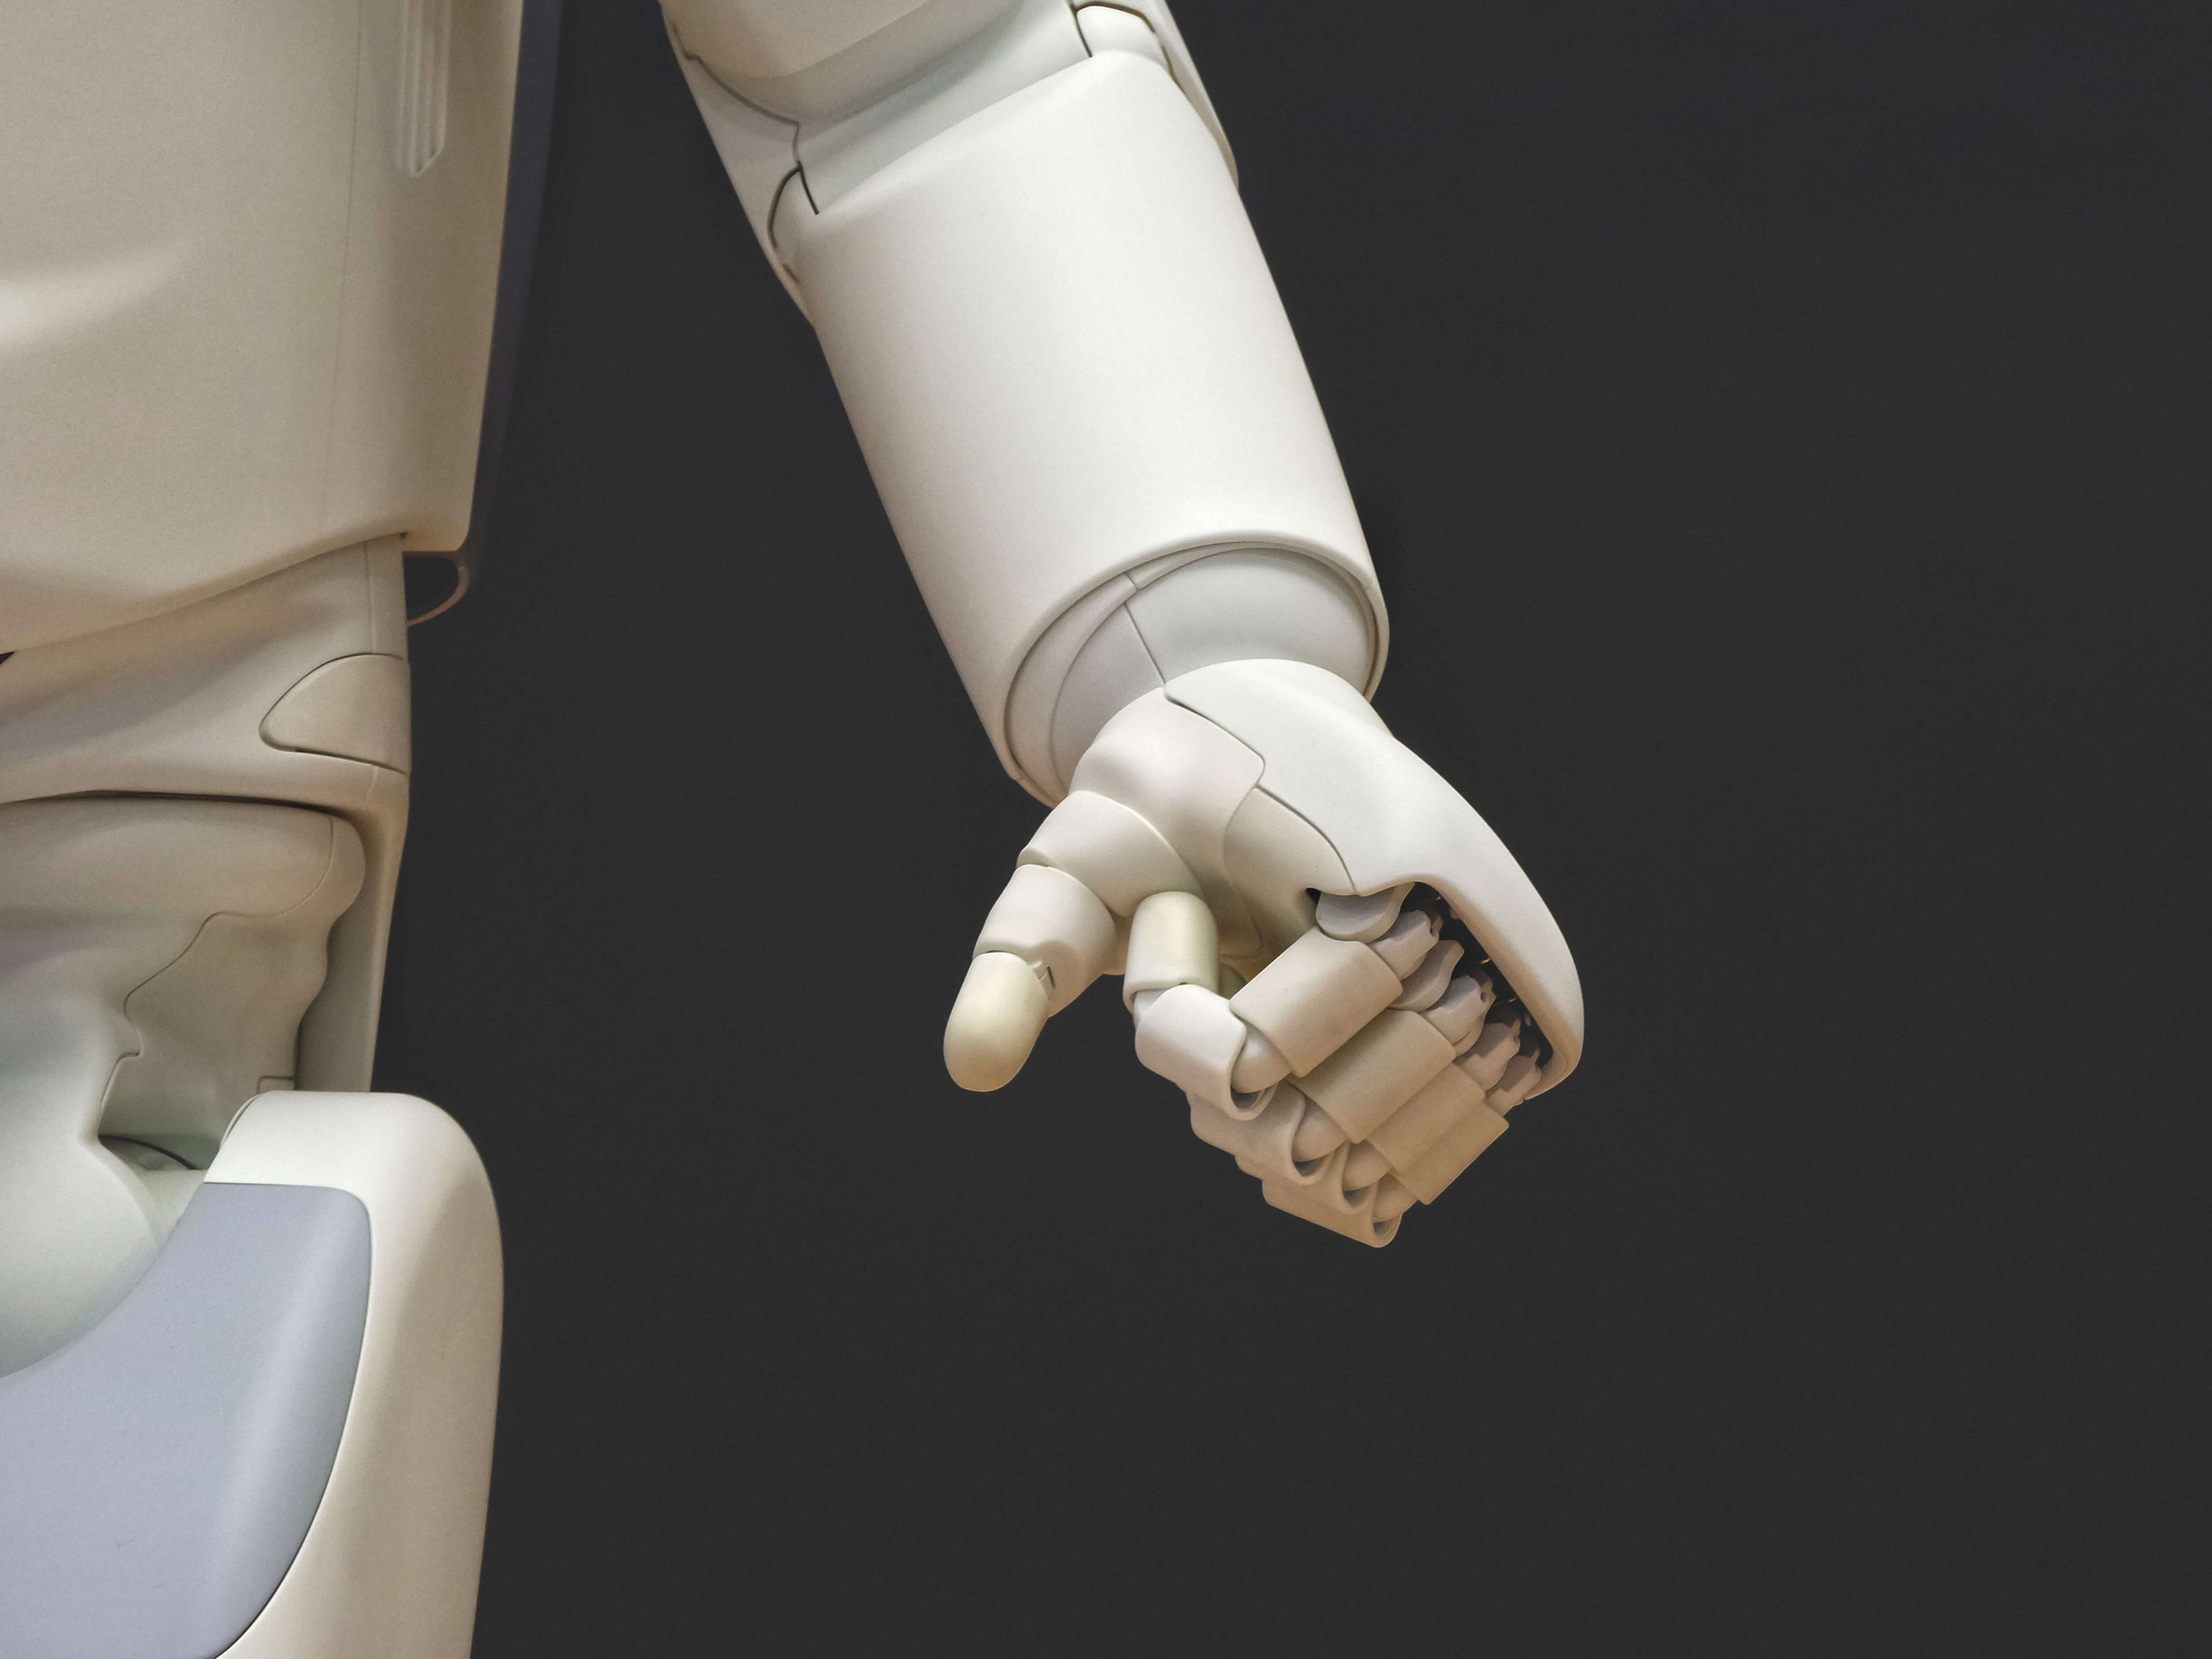 An arm of an AI android. Image credit: Photos Hobby/Unsplash